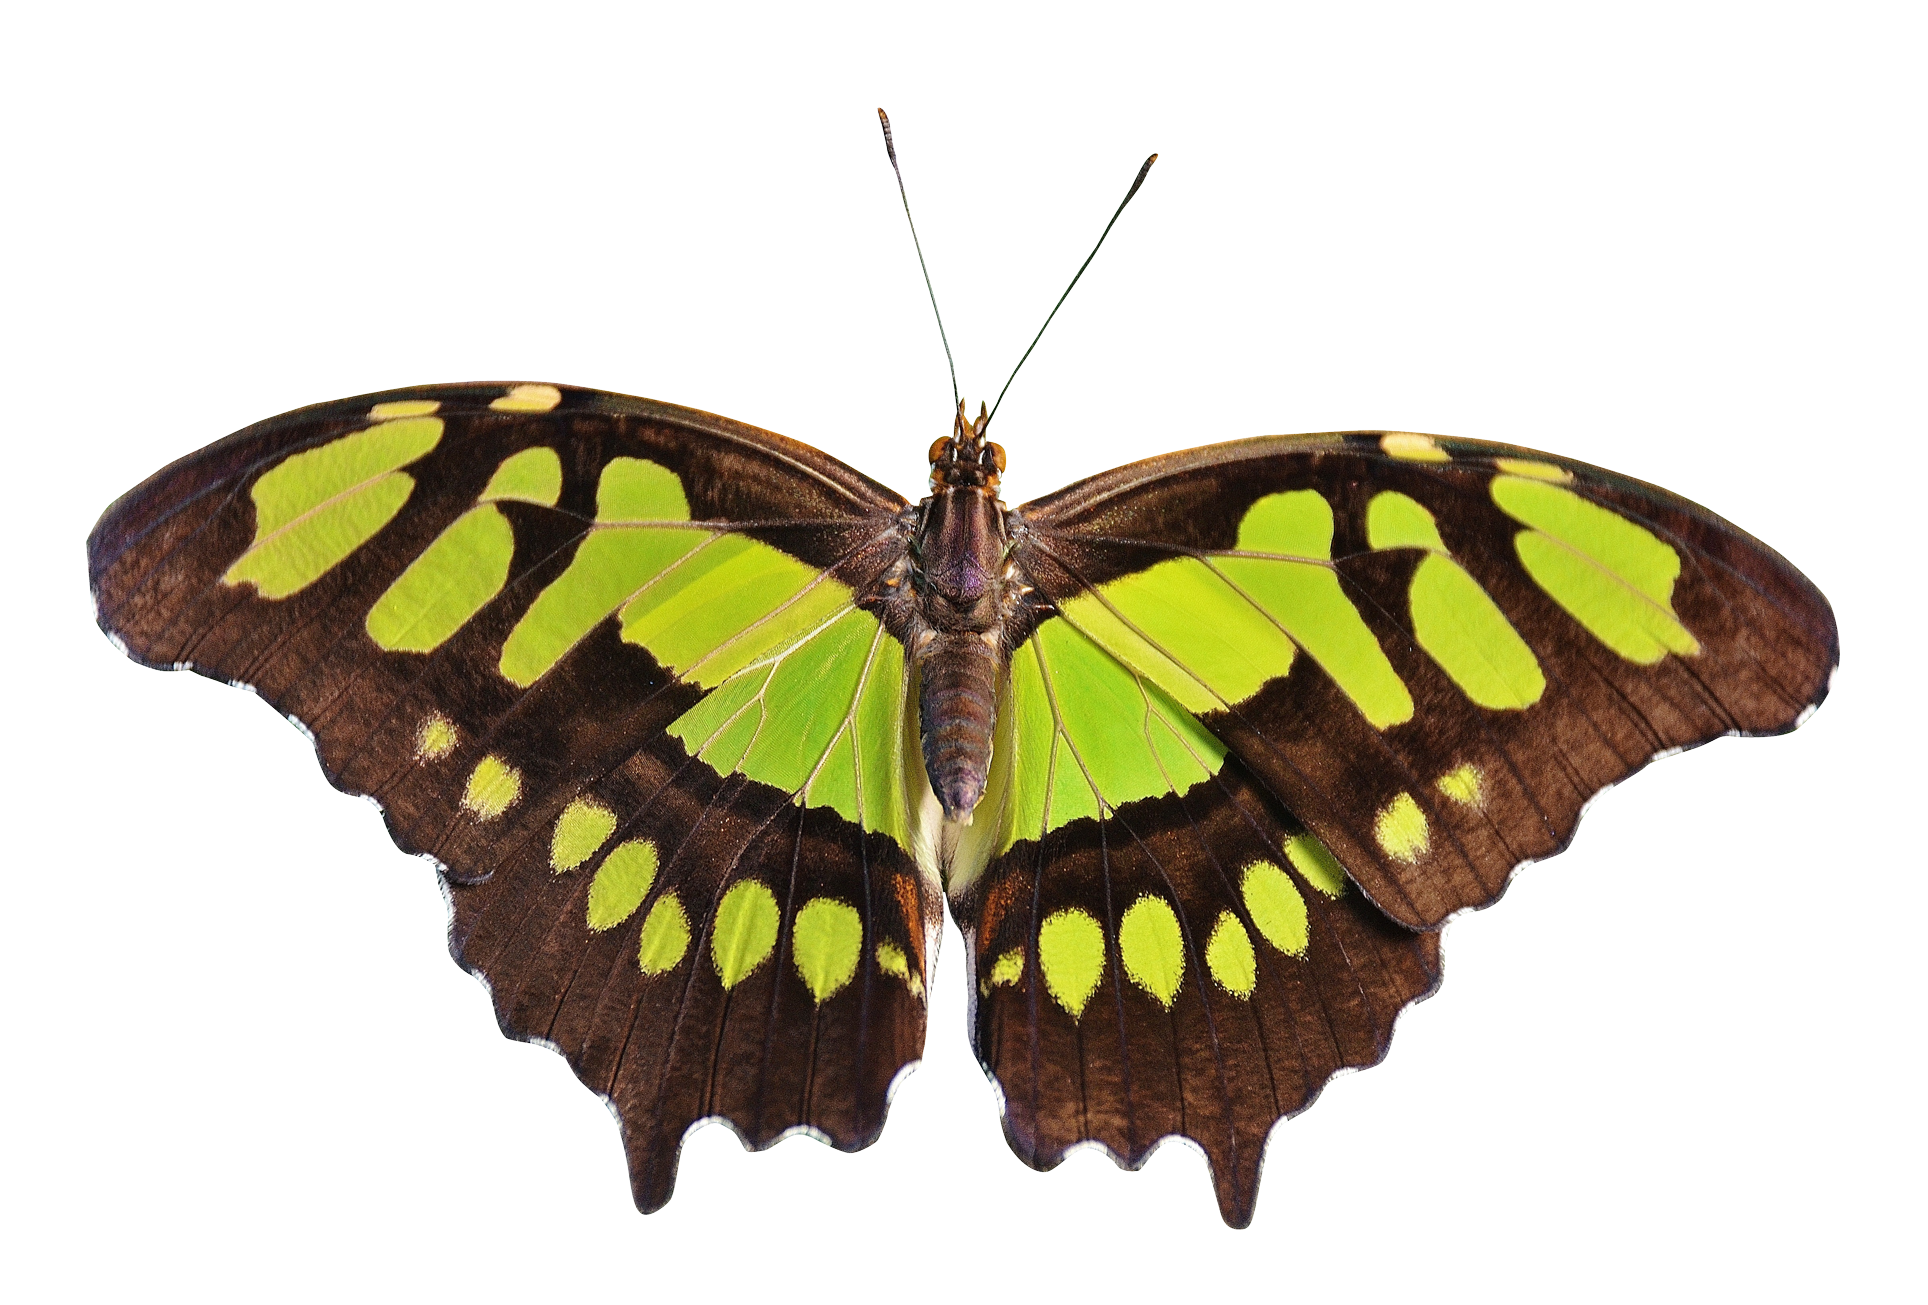 Png butterfly. Green image purepng free